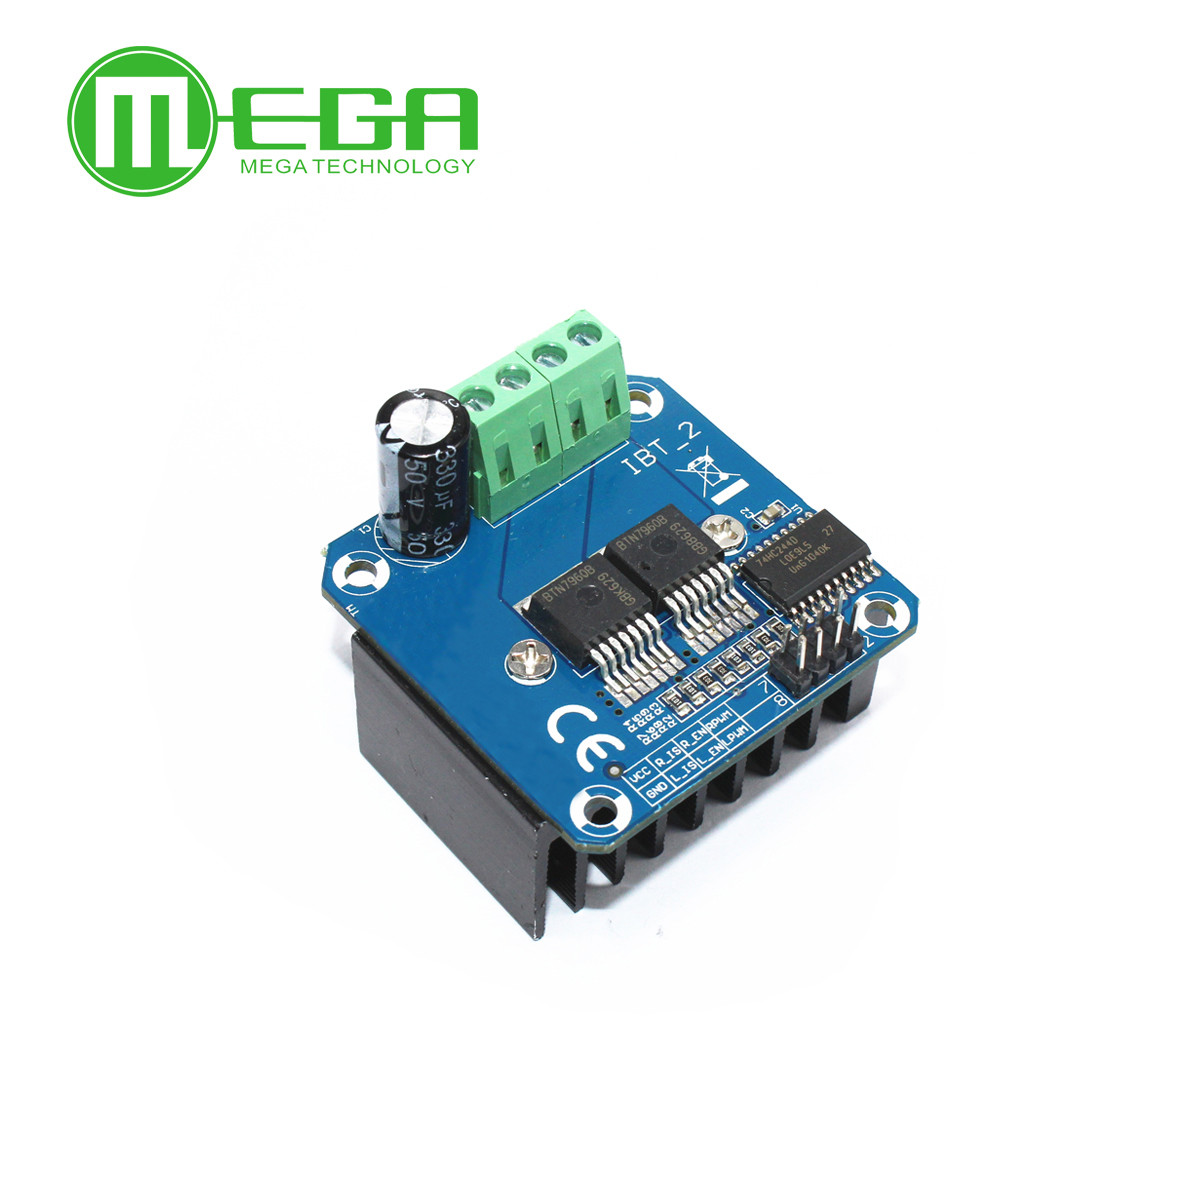 BTS7960 43A H-bridge High-power Motor Driver module/smart car/BTS7960 43A H-bridge High-power Motor Driver module/smart car/